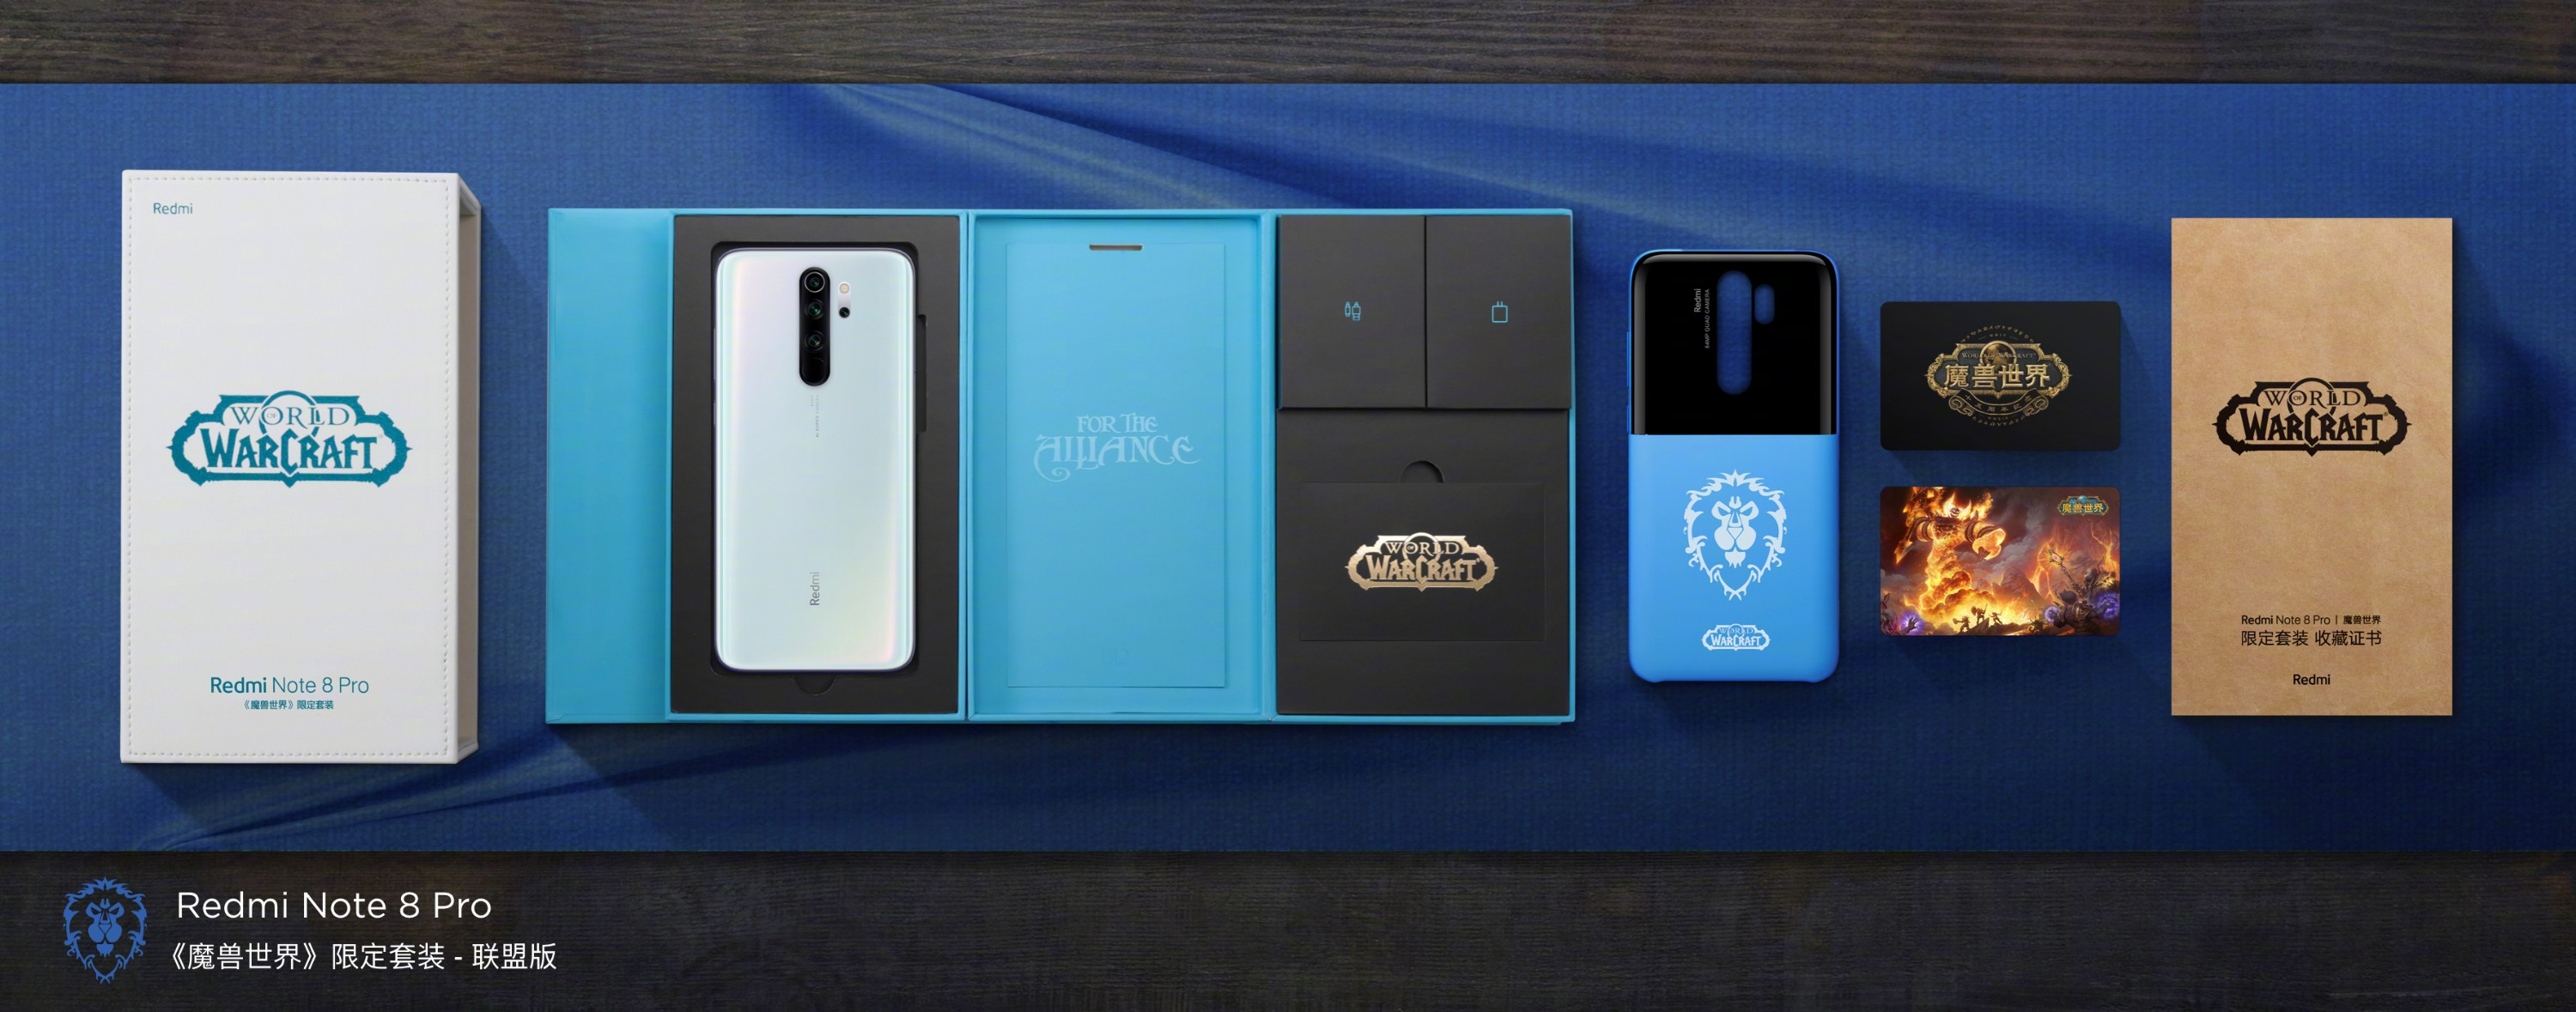 Redmi Note 8 Pro World of Warcraft Limited Edition For the Alliance